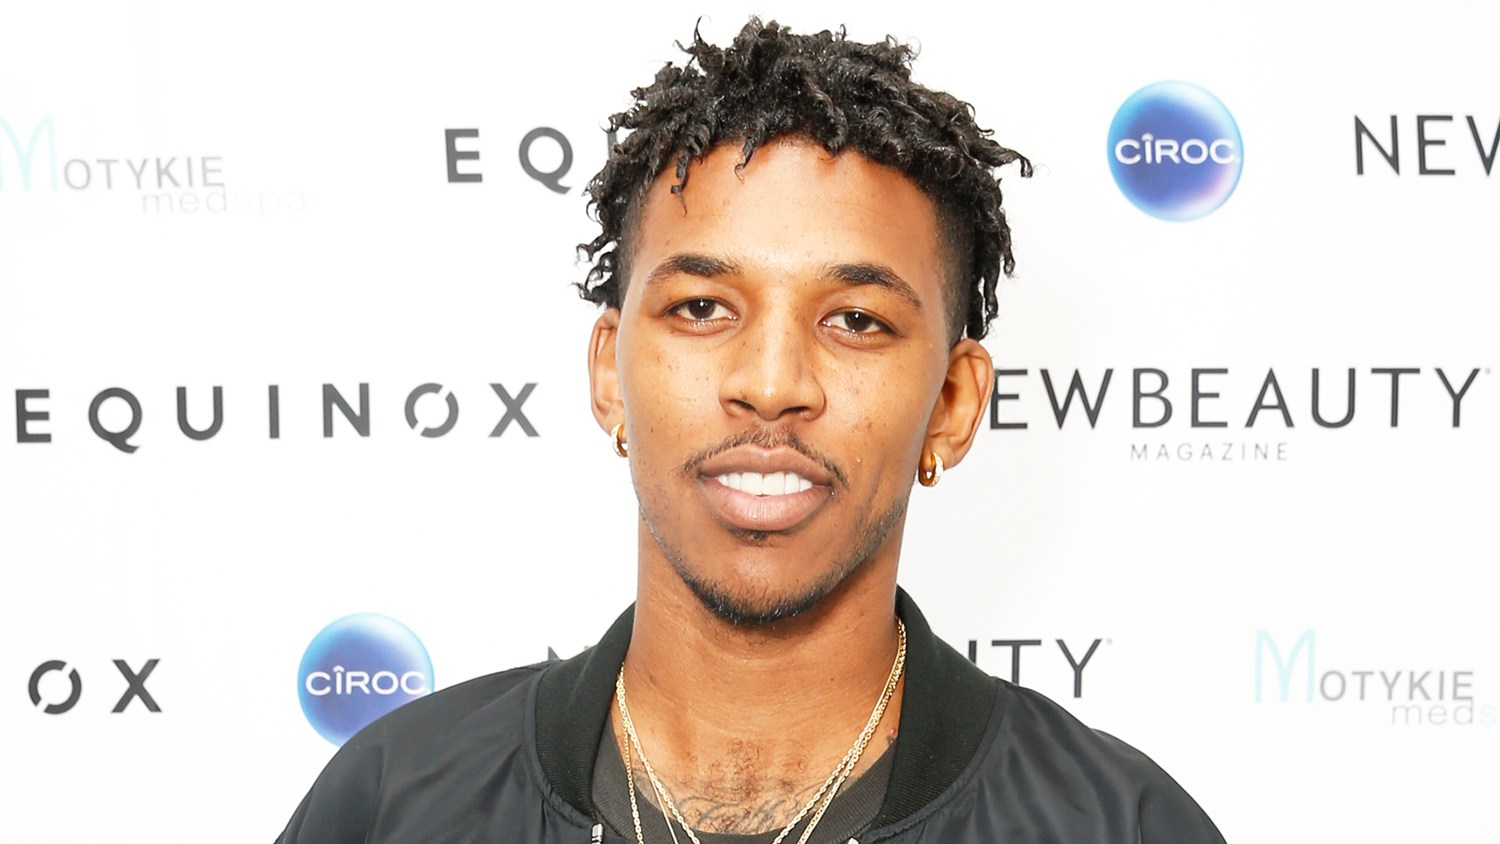 Nick Young arrives Fall Into Amazing Skin event on September 13, 2016 in West Hollywood, California.